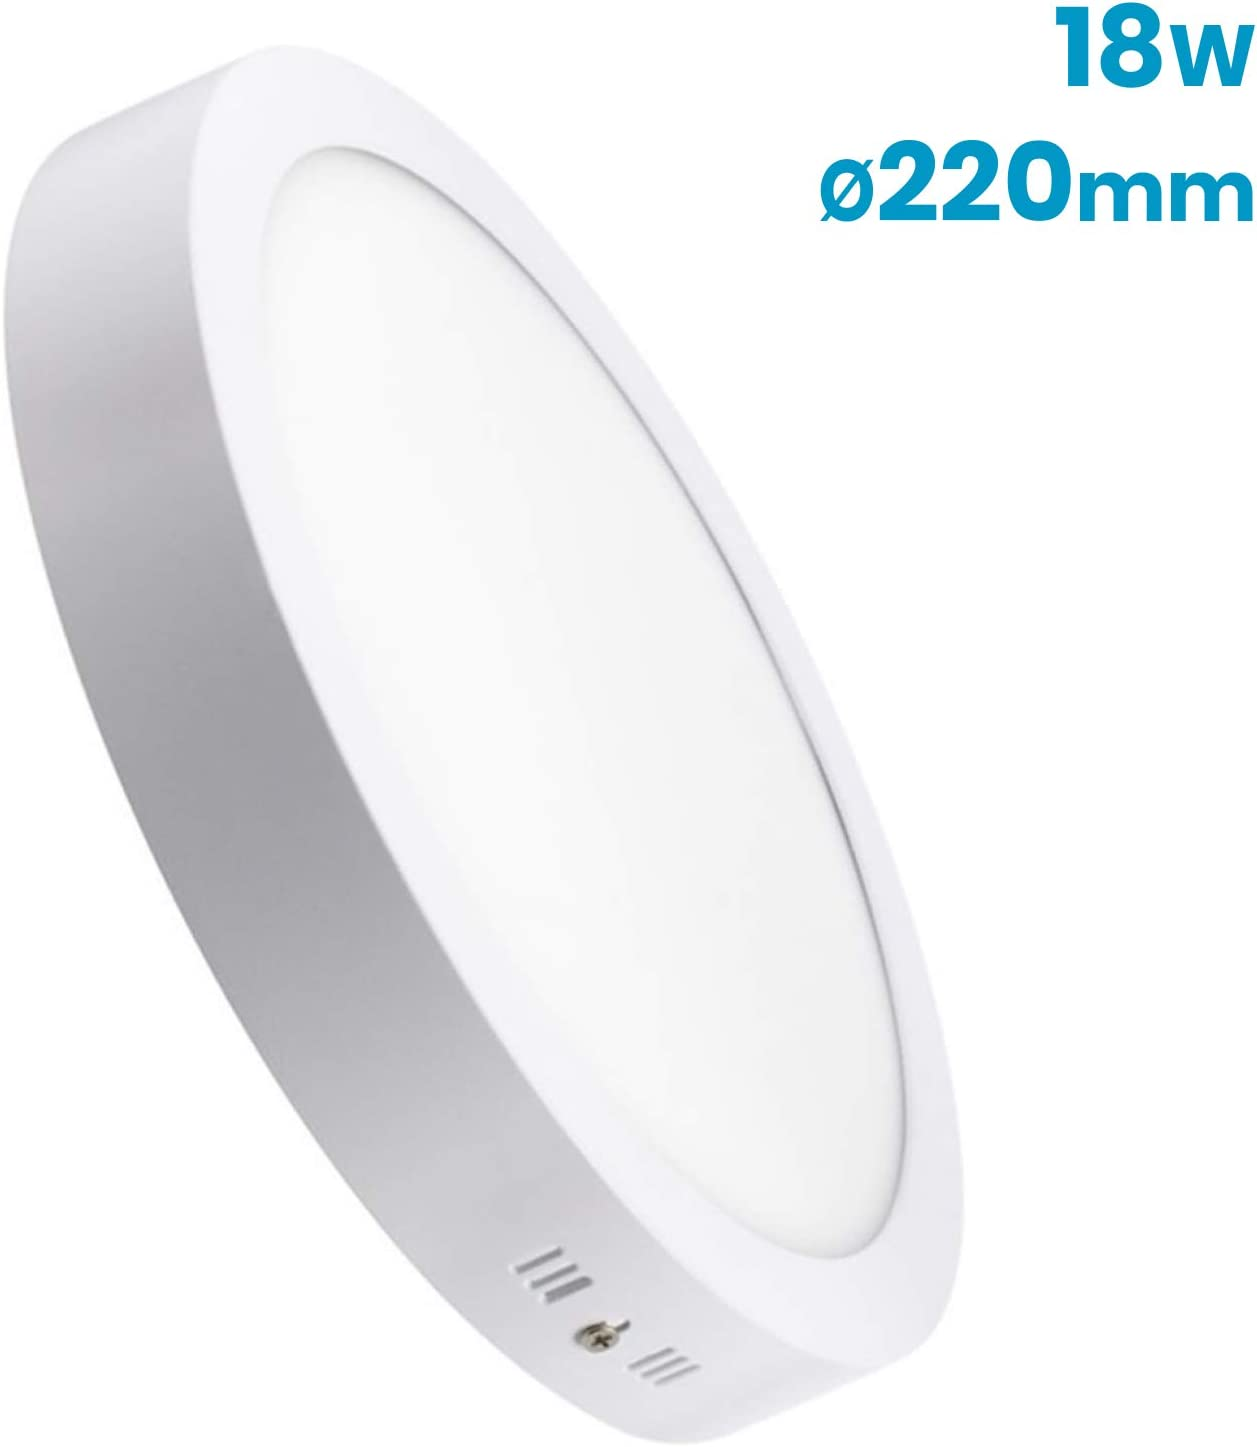 LA) Pack Plafón Downlight LED Circular 18W superficie. 1600 lumenes reales. Driver incluido. (Blanco neutro (4500K), 1 Unidad): Amazon.es: Iluminación